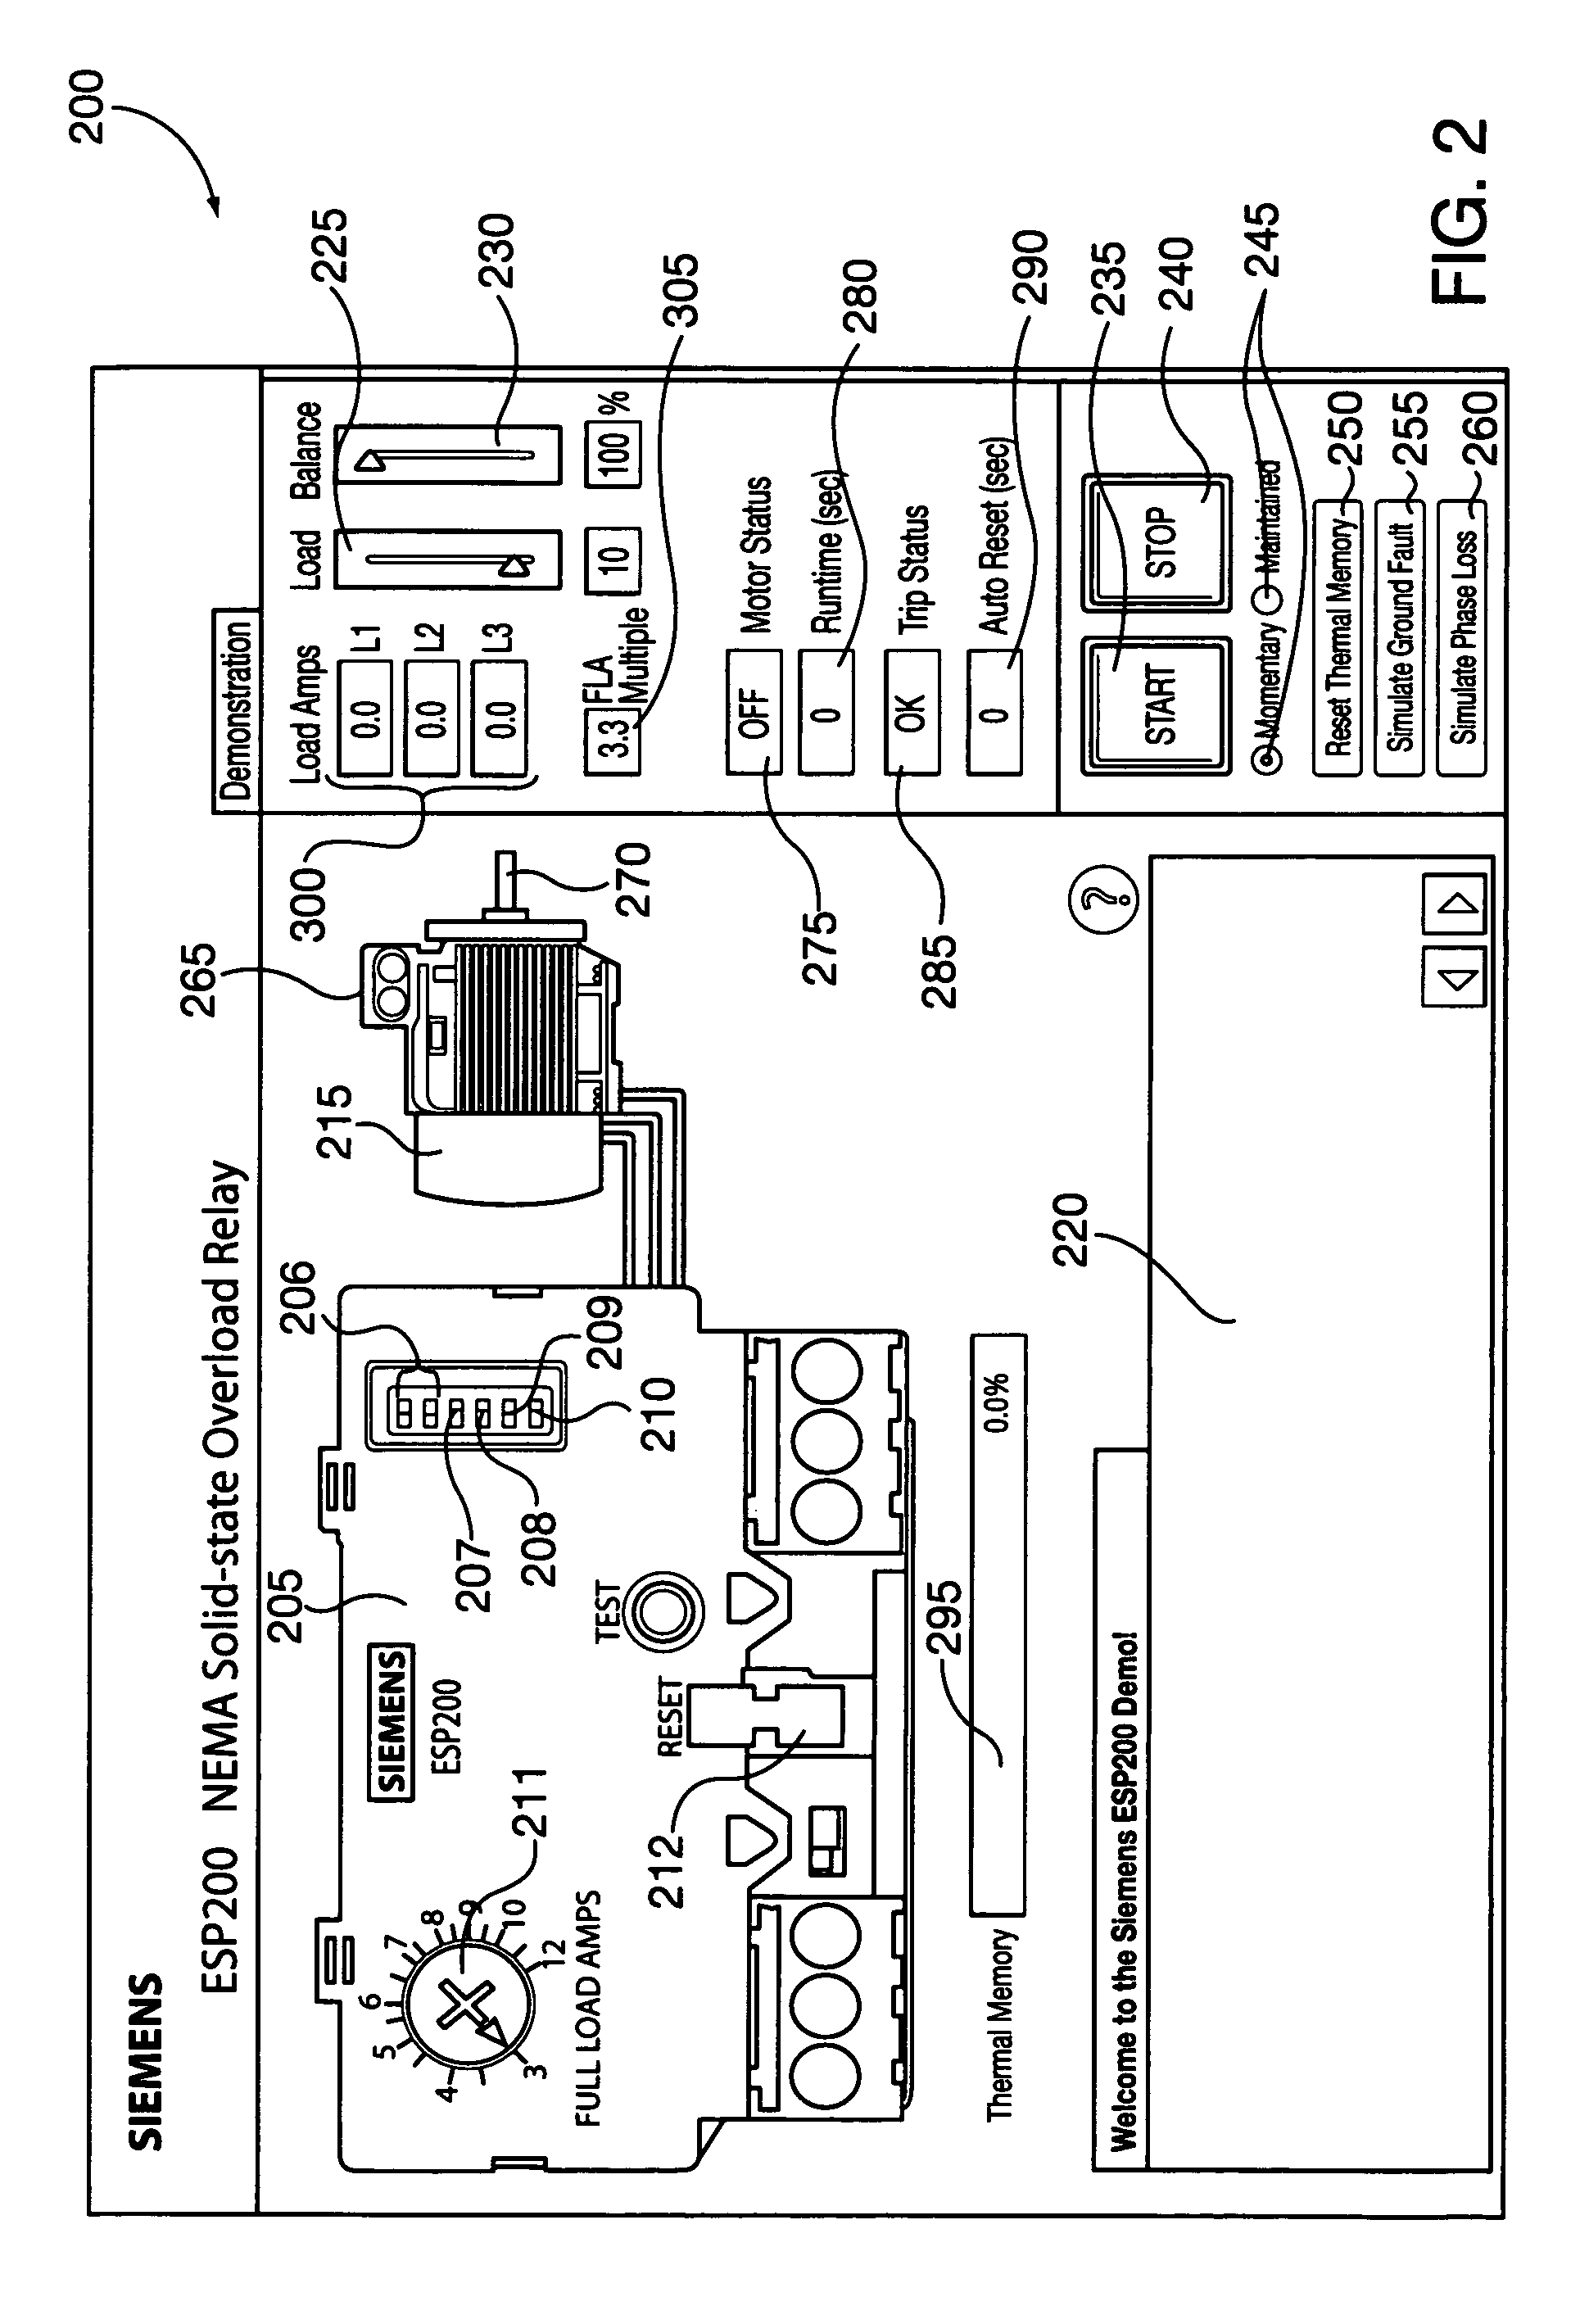 wiring diagram siemens imaging equipment